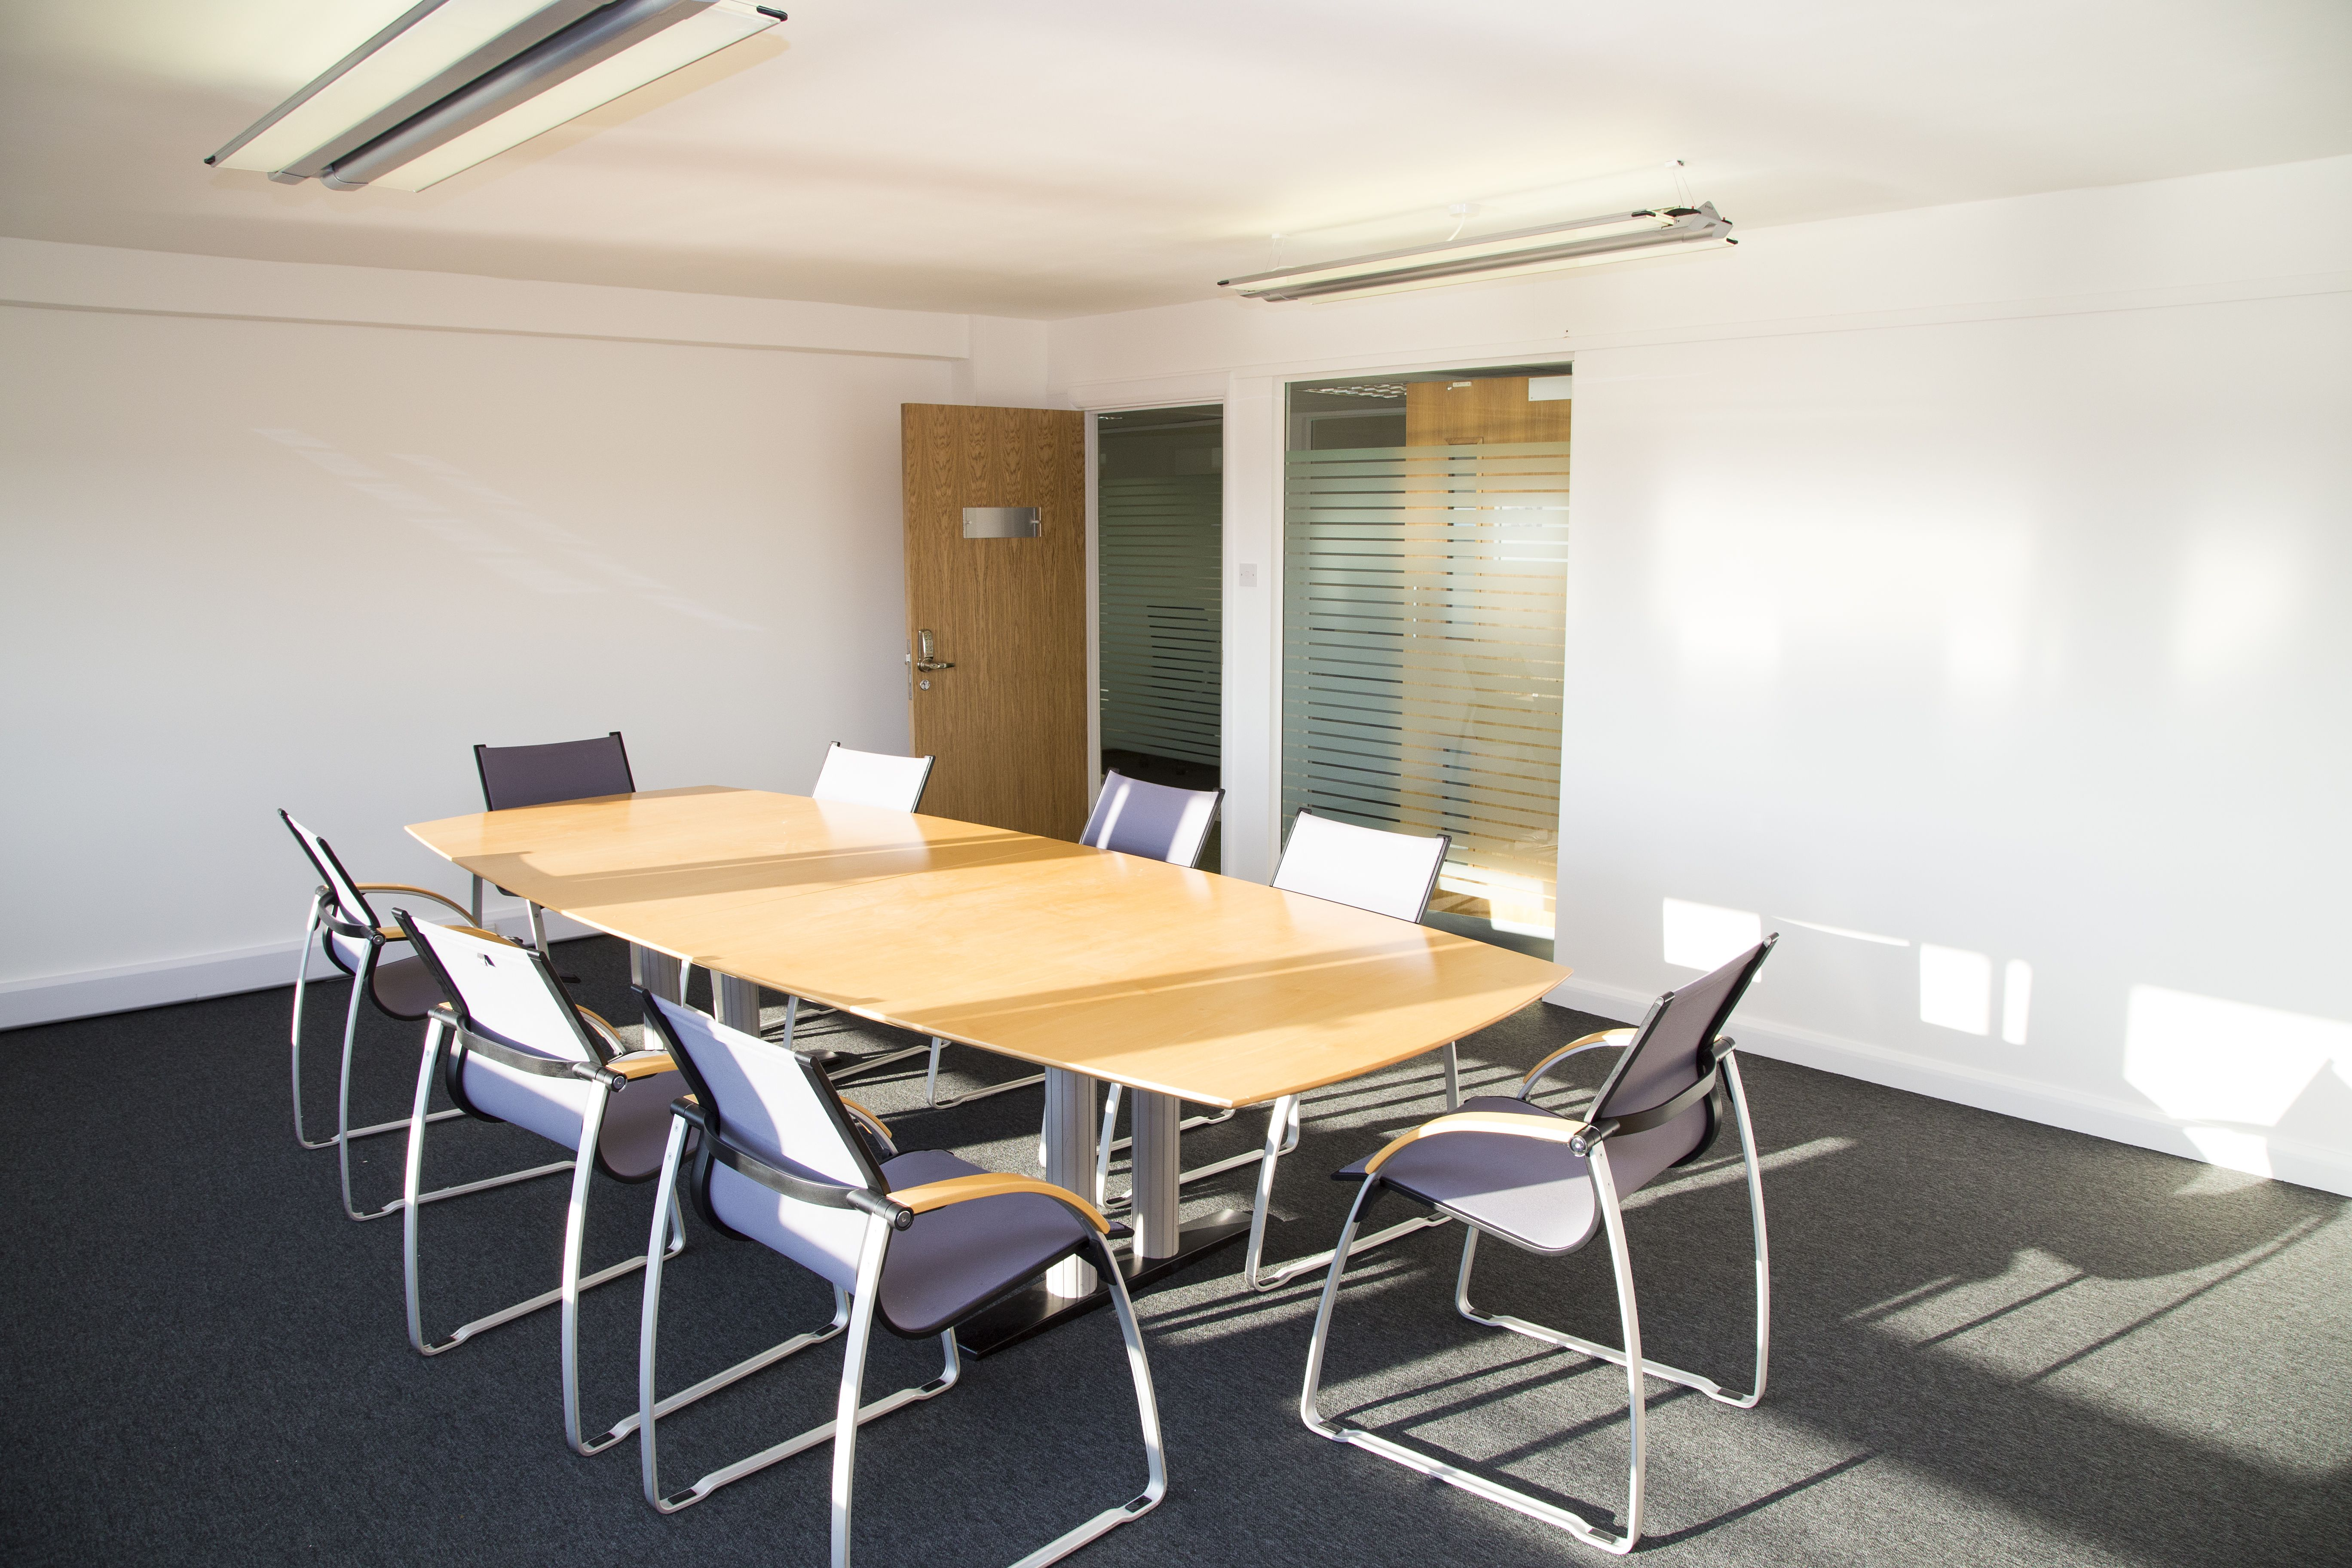 manager meeting room Meetio is a software company from sweden that provides solutions for undisturbed, efficient meetings and better utilization of room resources thousands of companies around the world use a meeting room manager from meetio on a daily basis.